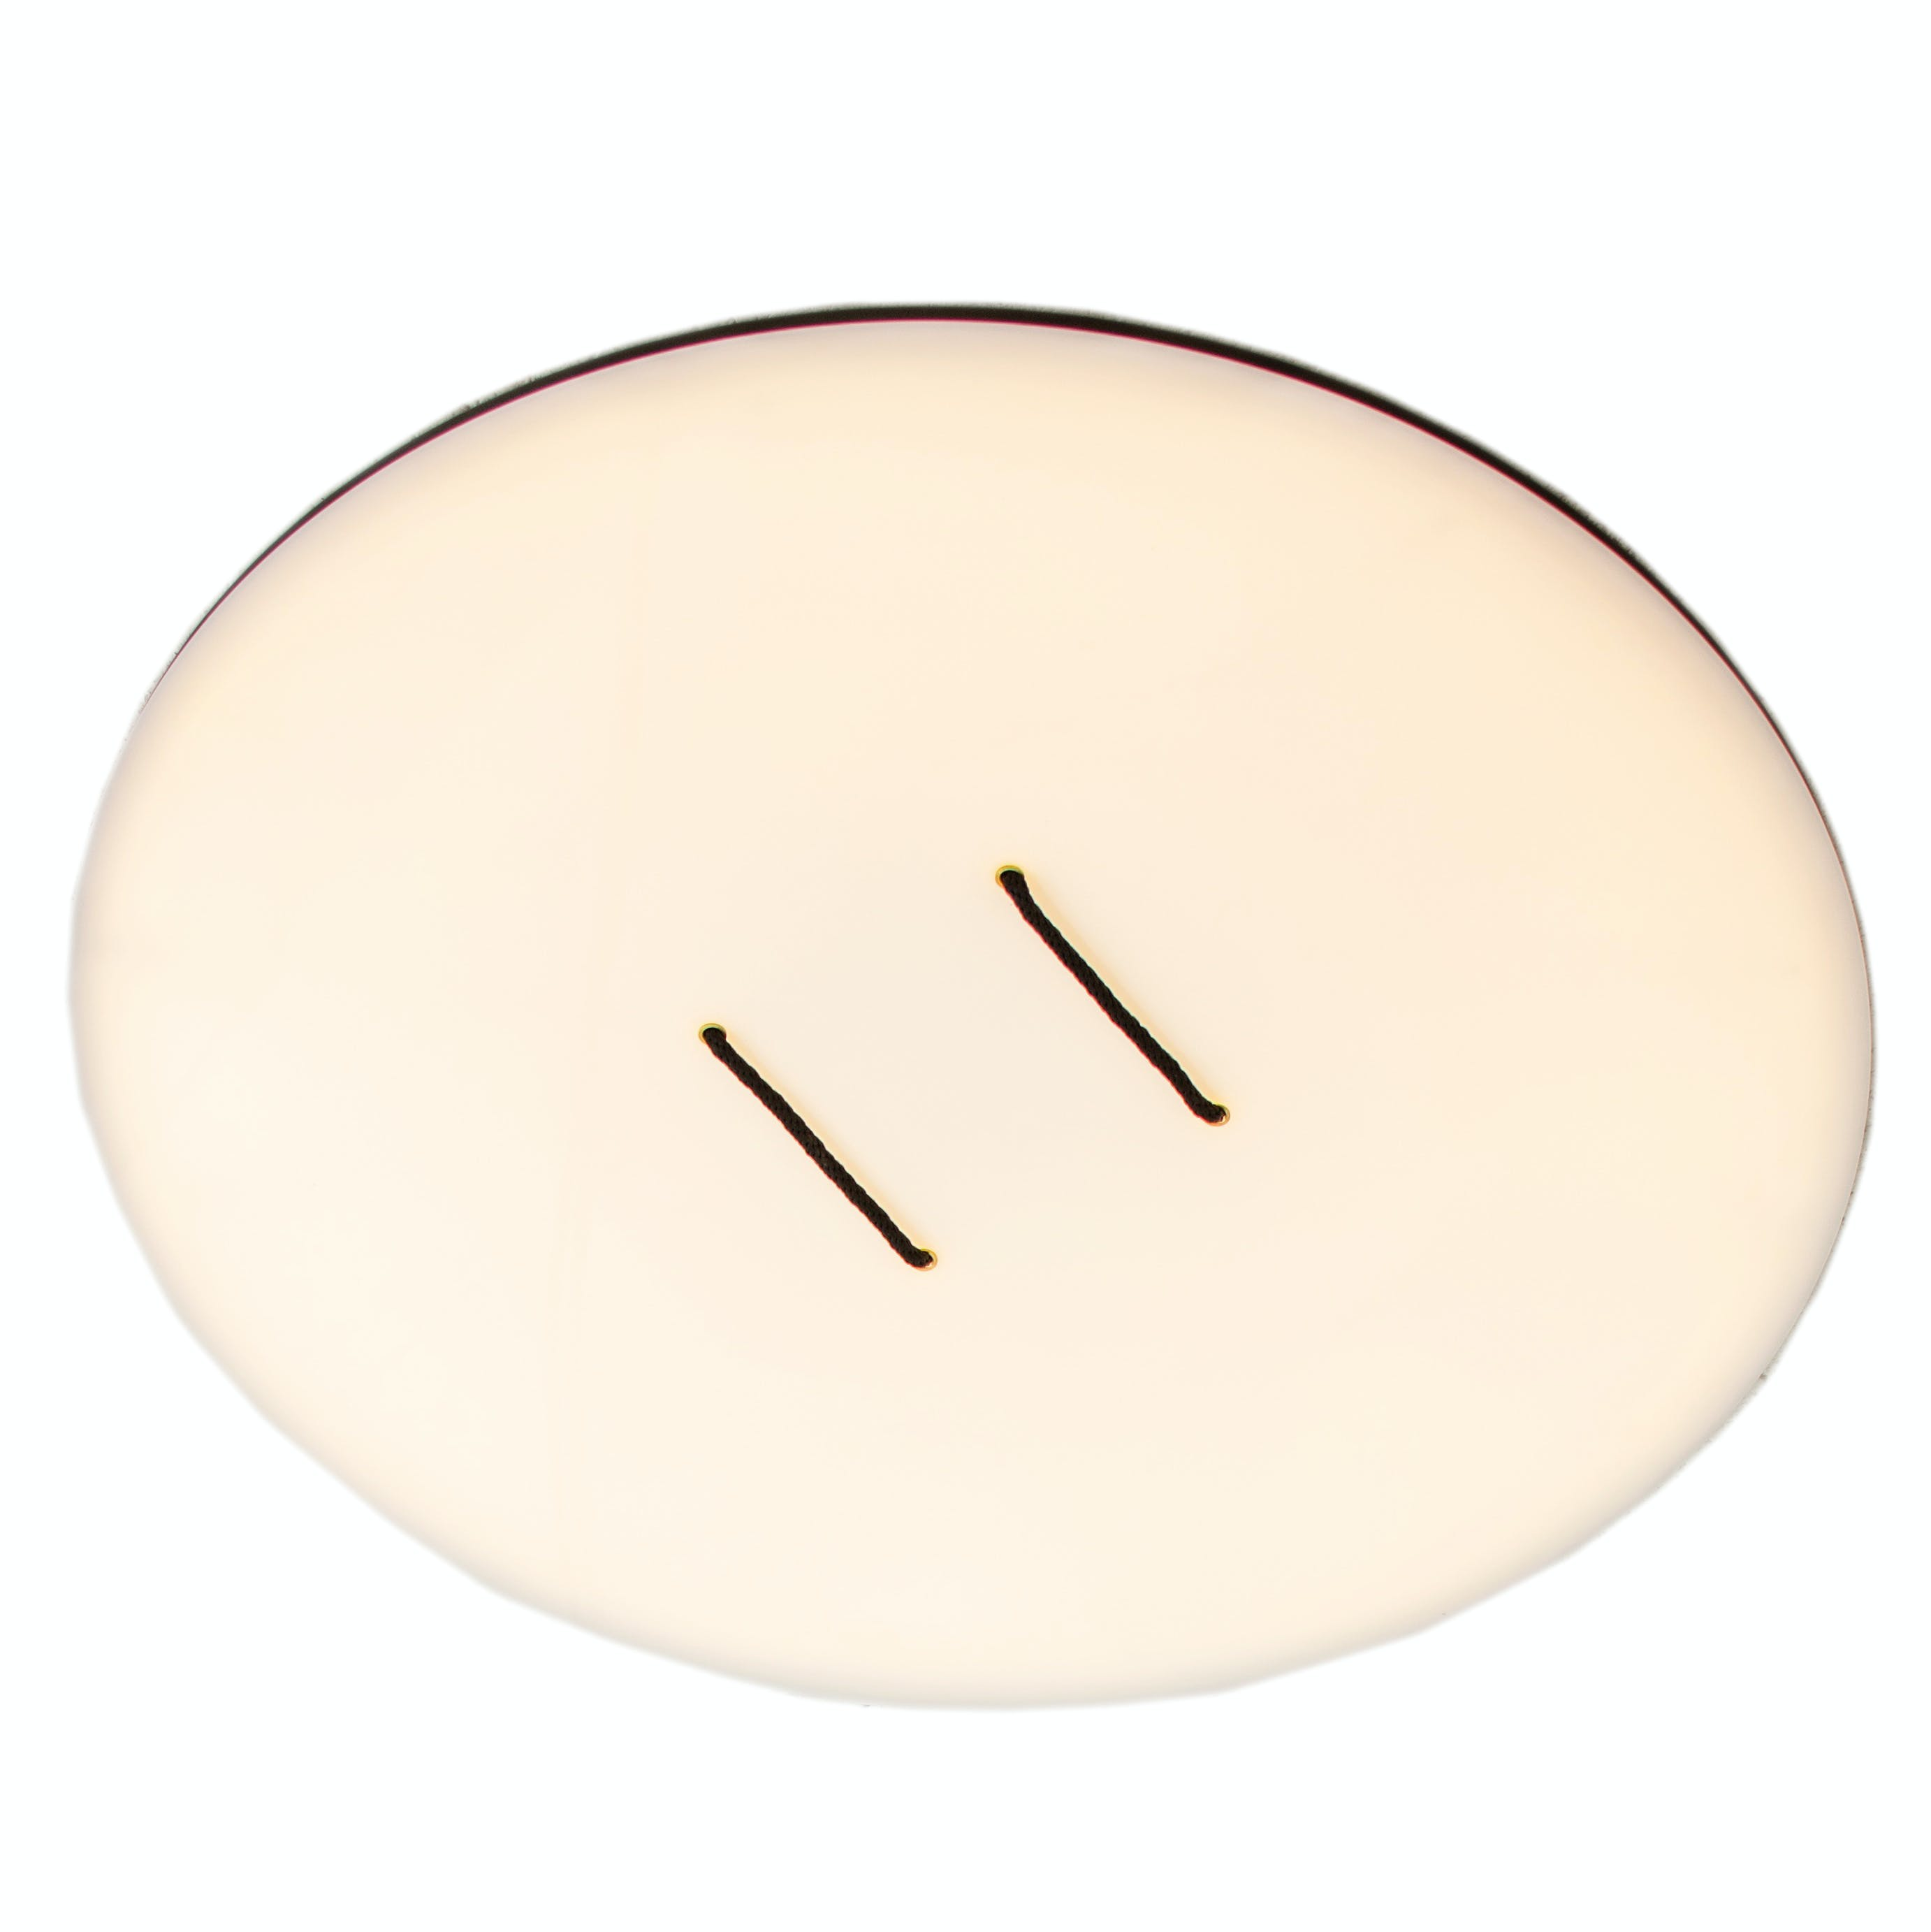 Andlight Button 60 Ceiling Wall Light Haute Living Thumbnail